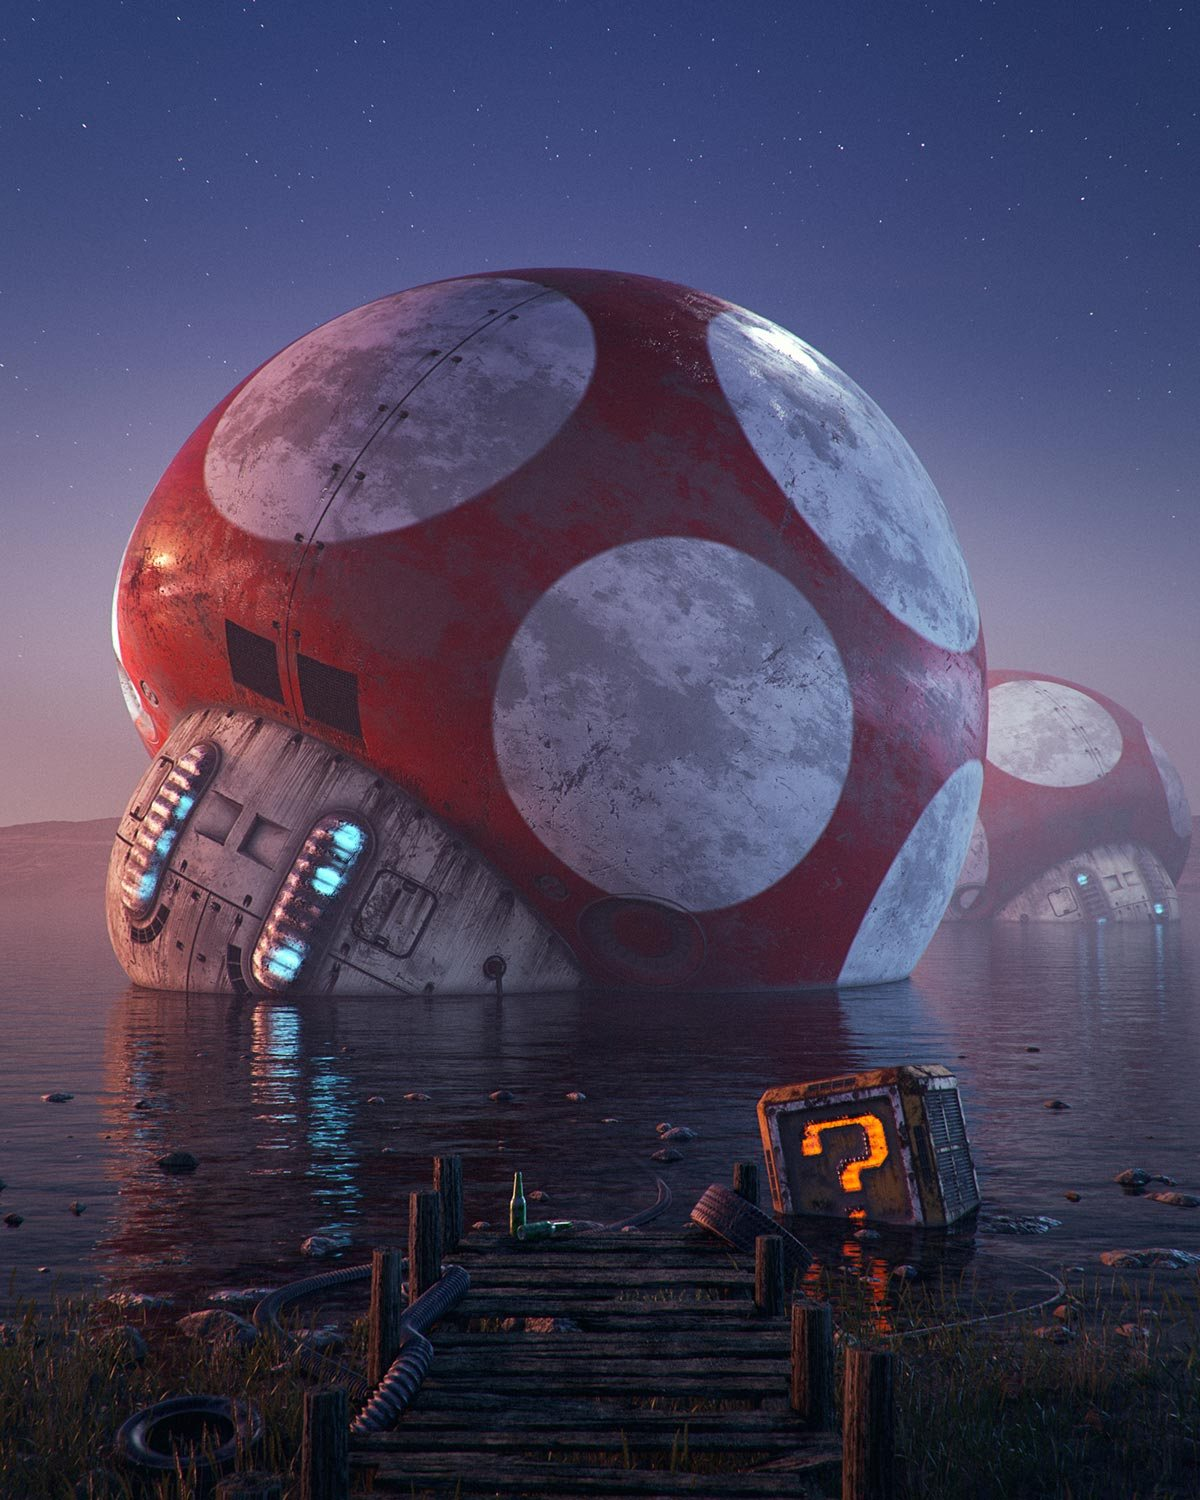 pop-culture-dystopia-by-filip-hodas-1